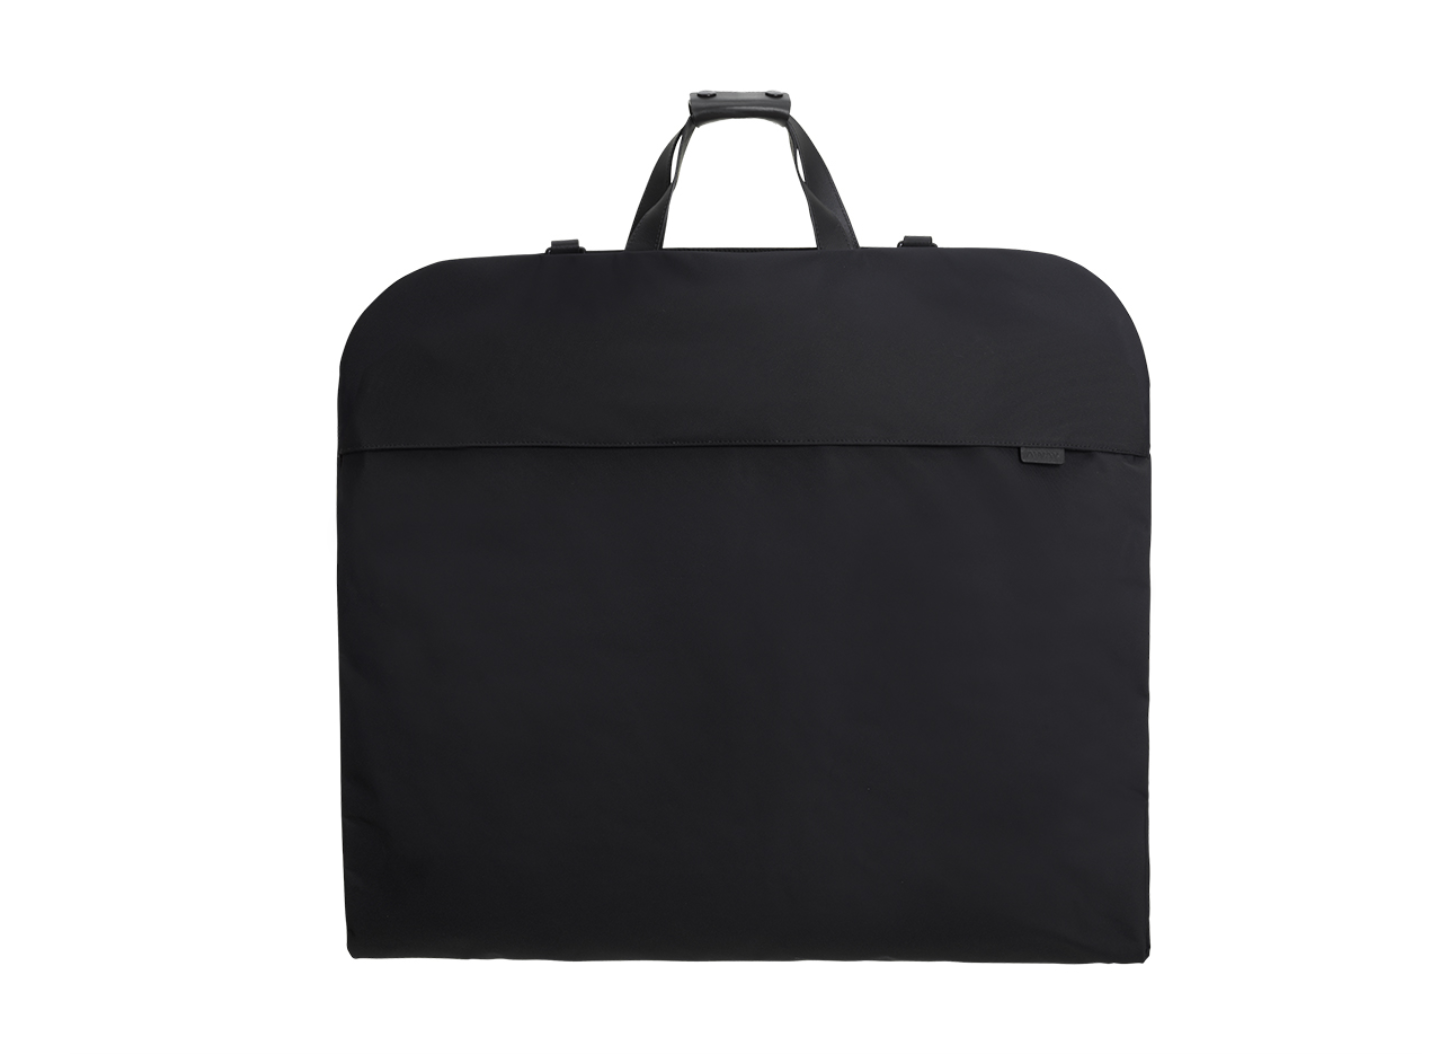 Garment bag by  AWAY